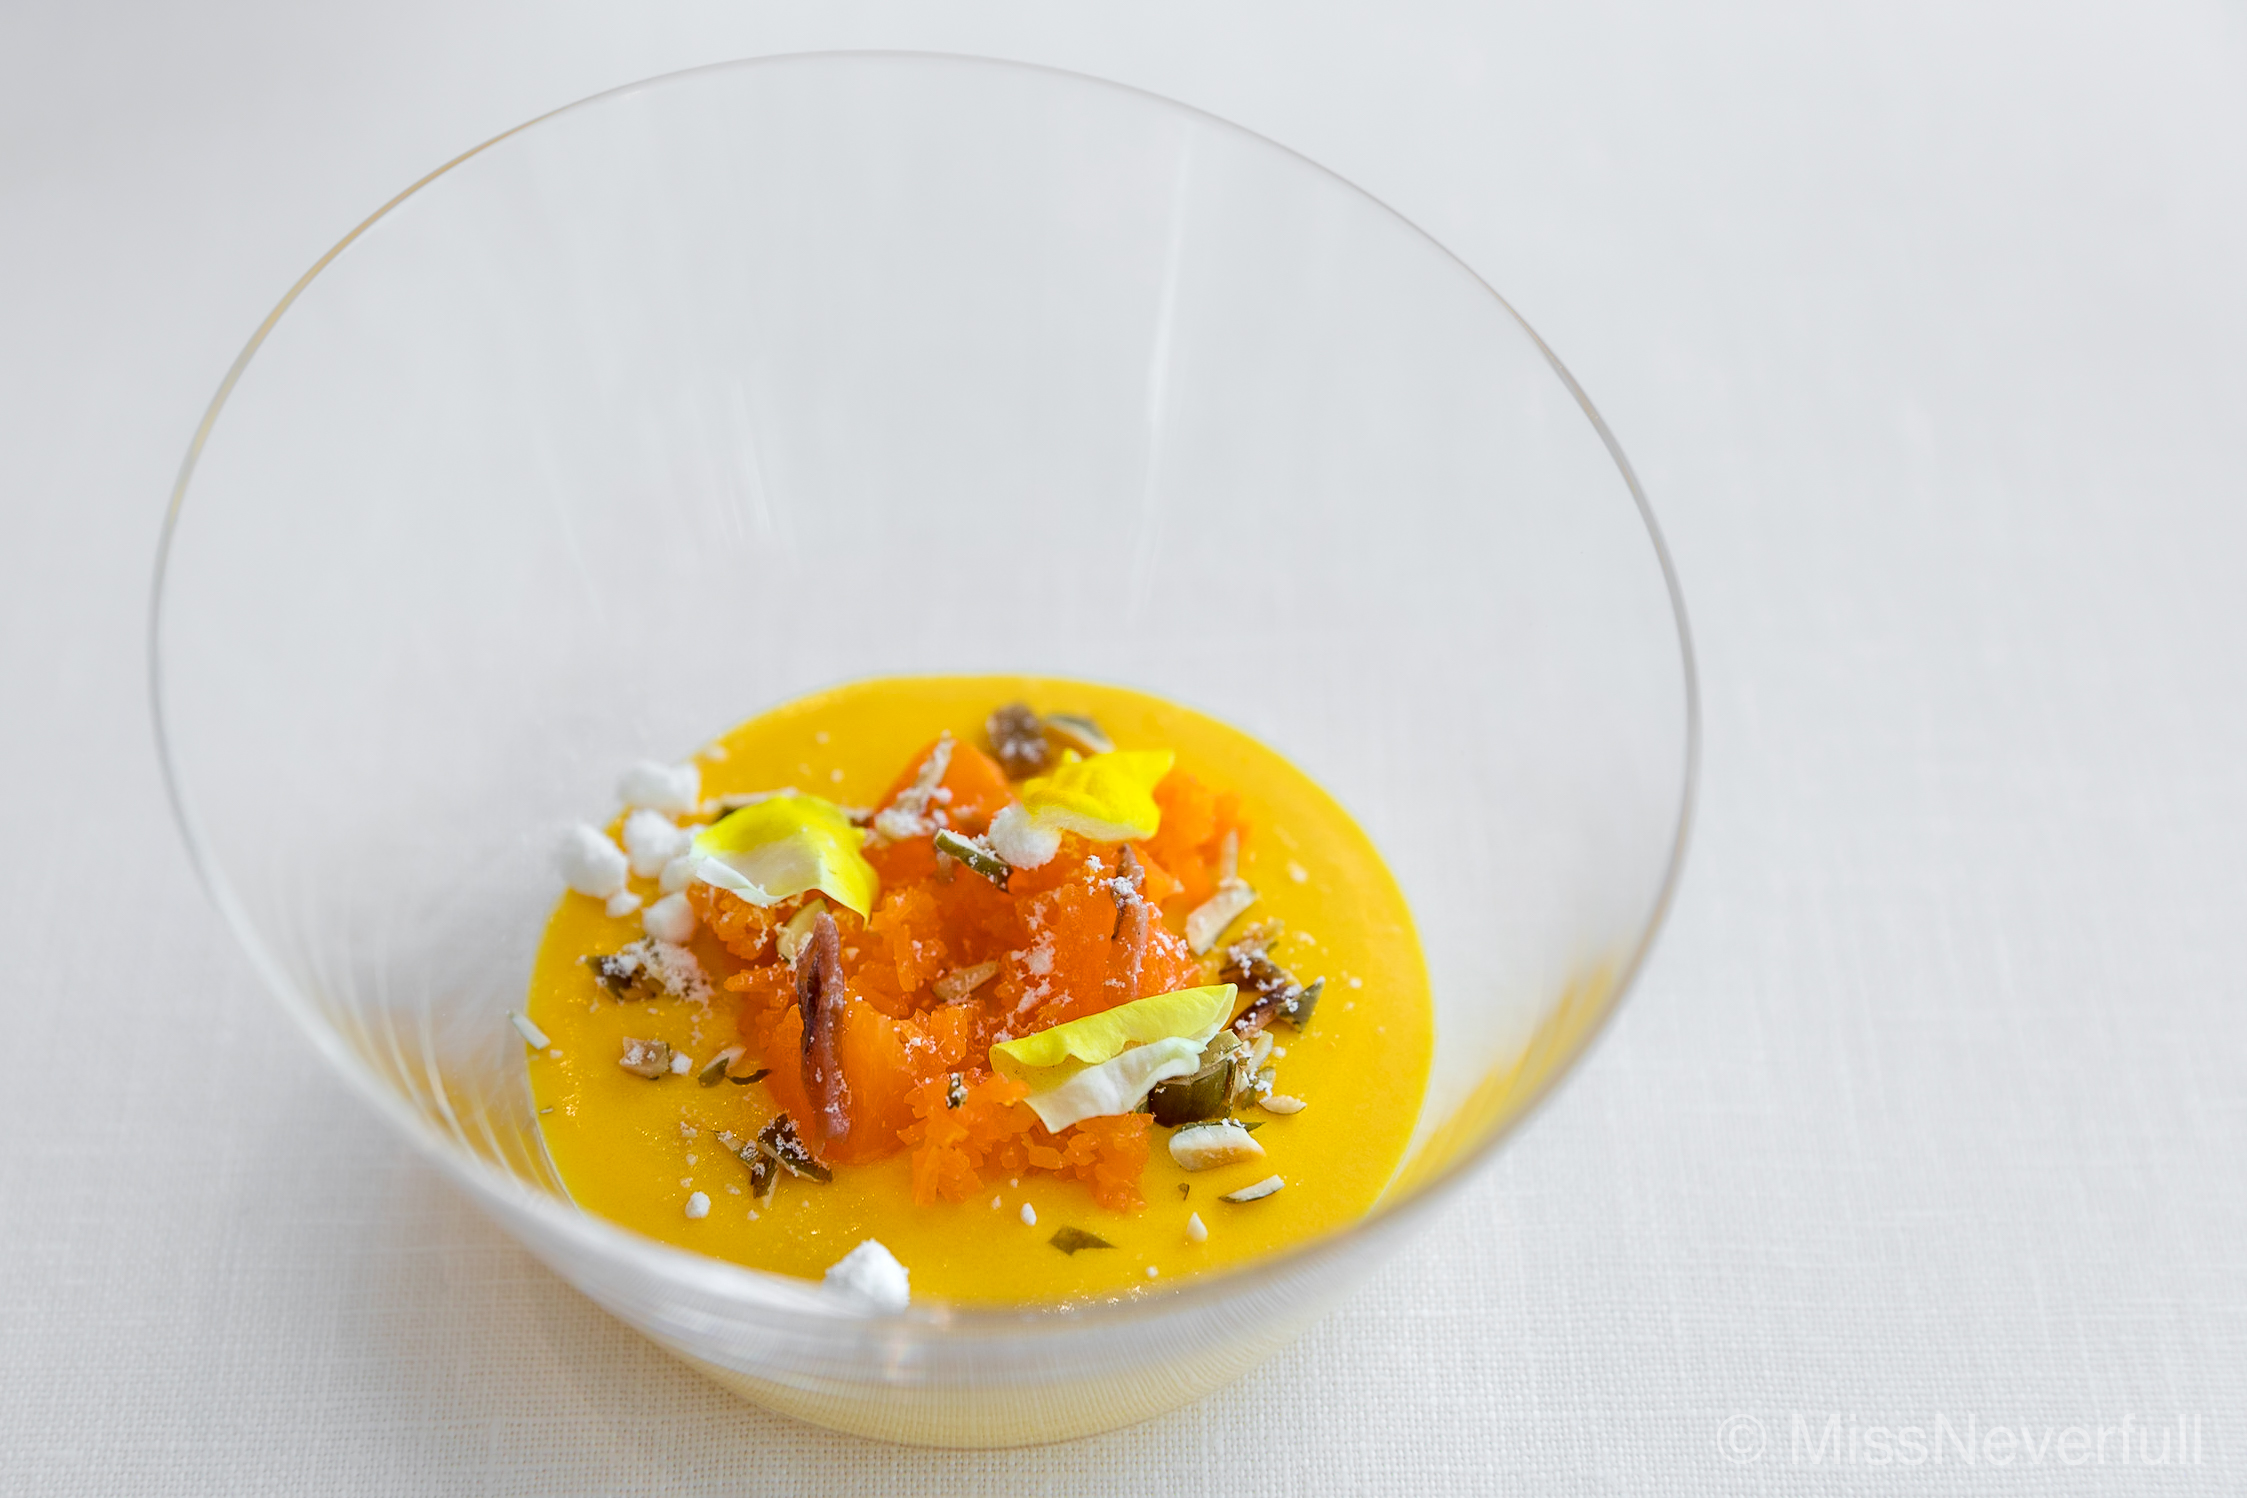 2.  Kabocha (Japanese pumpkin) Mousse with Mikan, anchovy, carrot, and olive oil sorbet